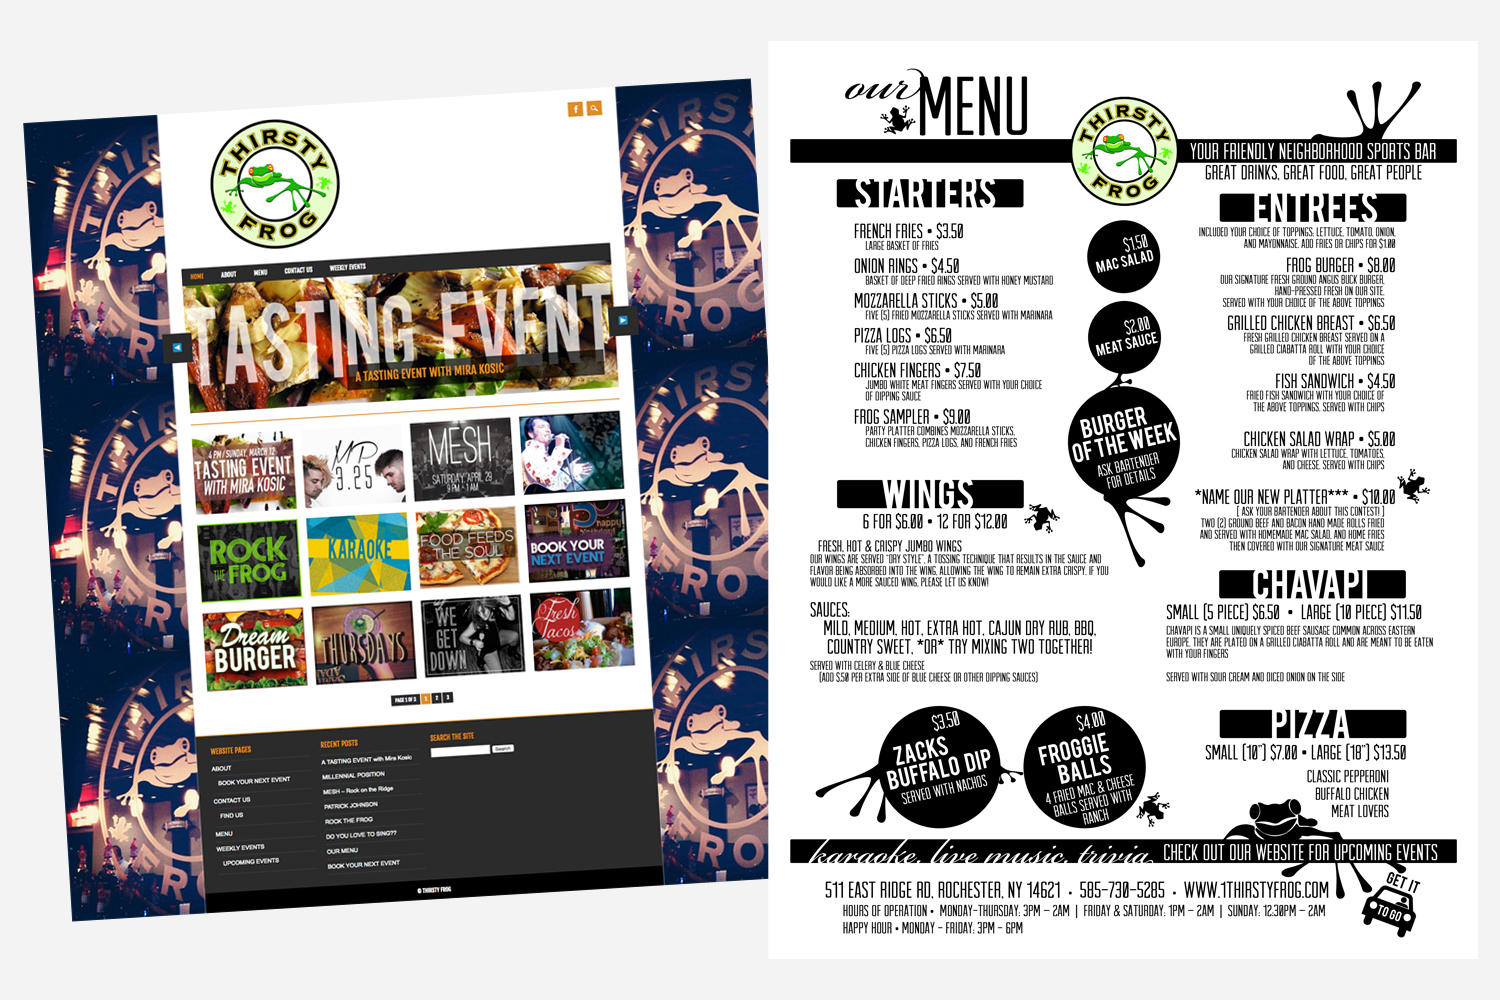 Thirsty Frog Website and Menu Design